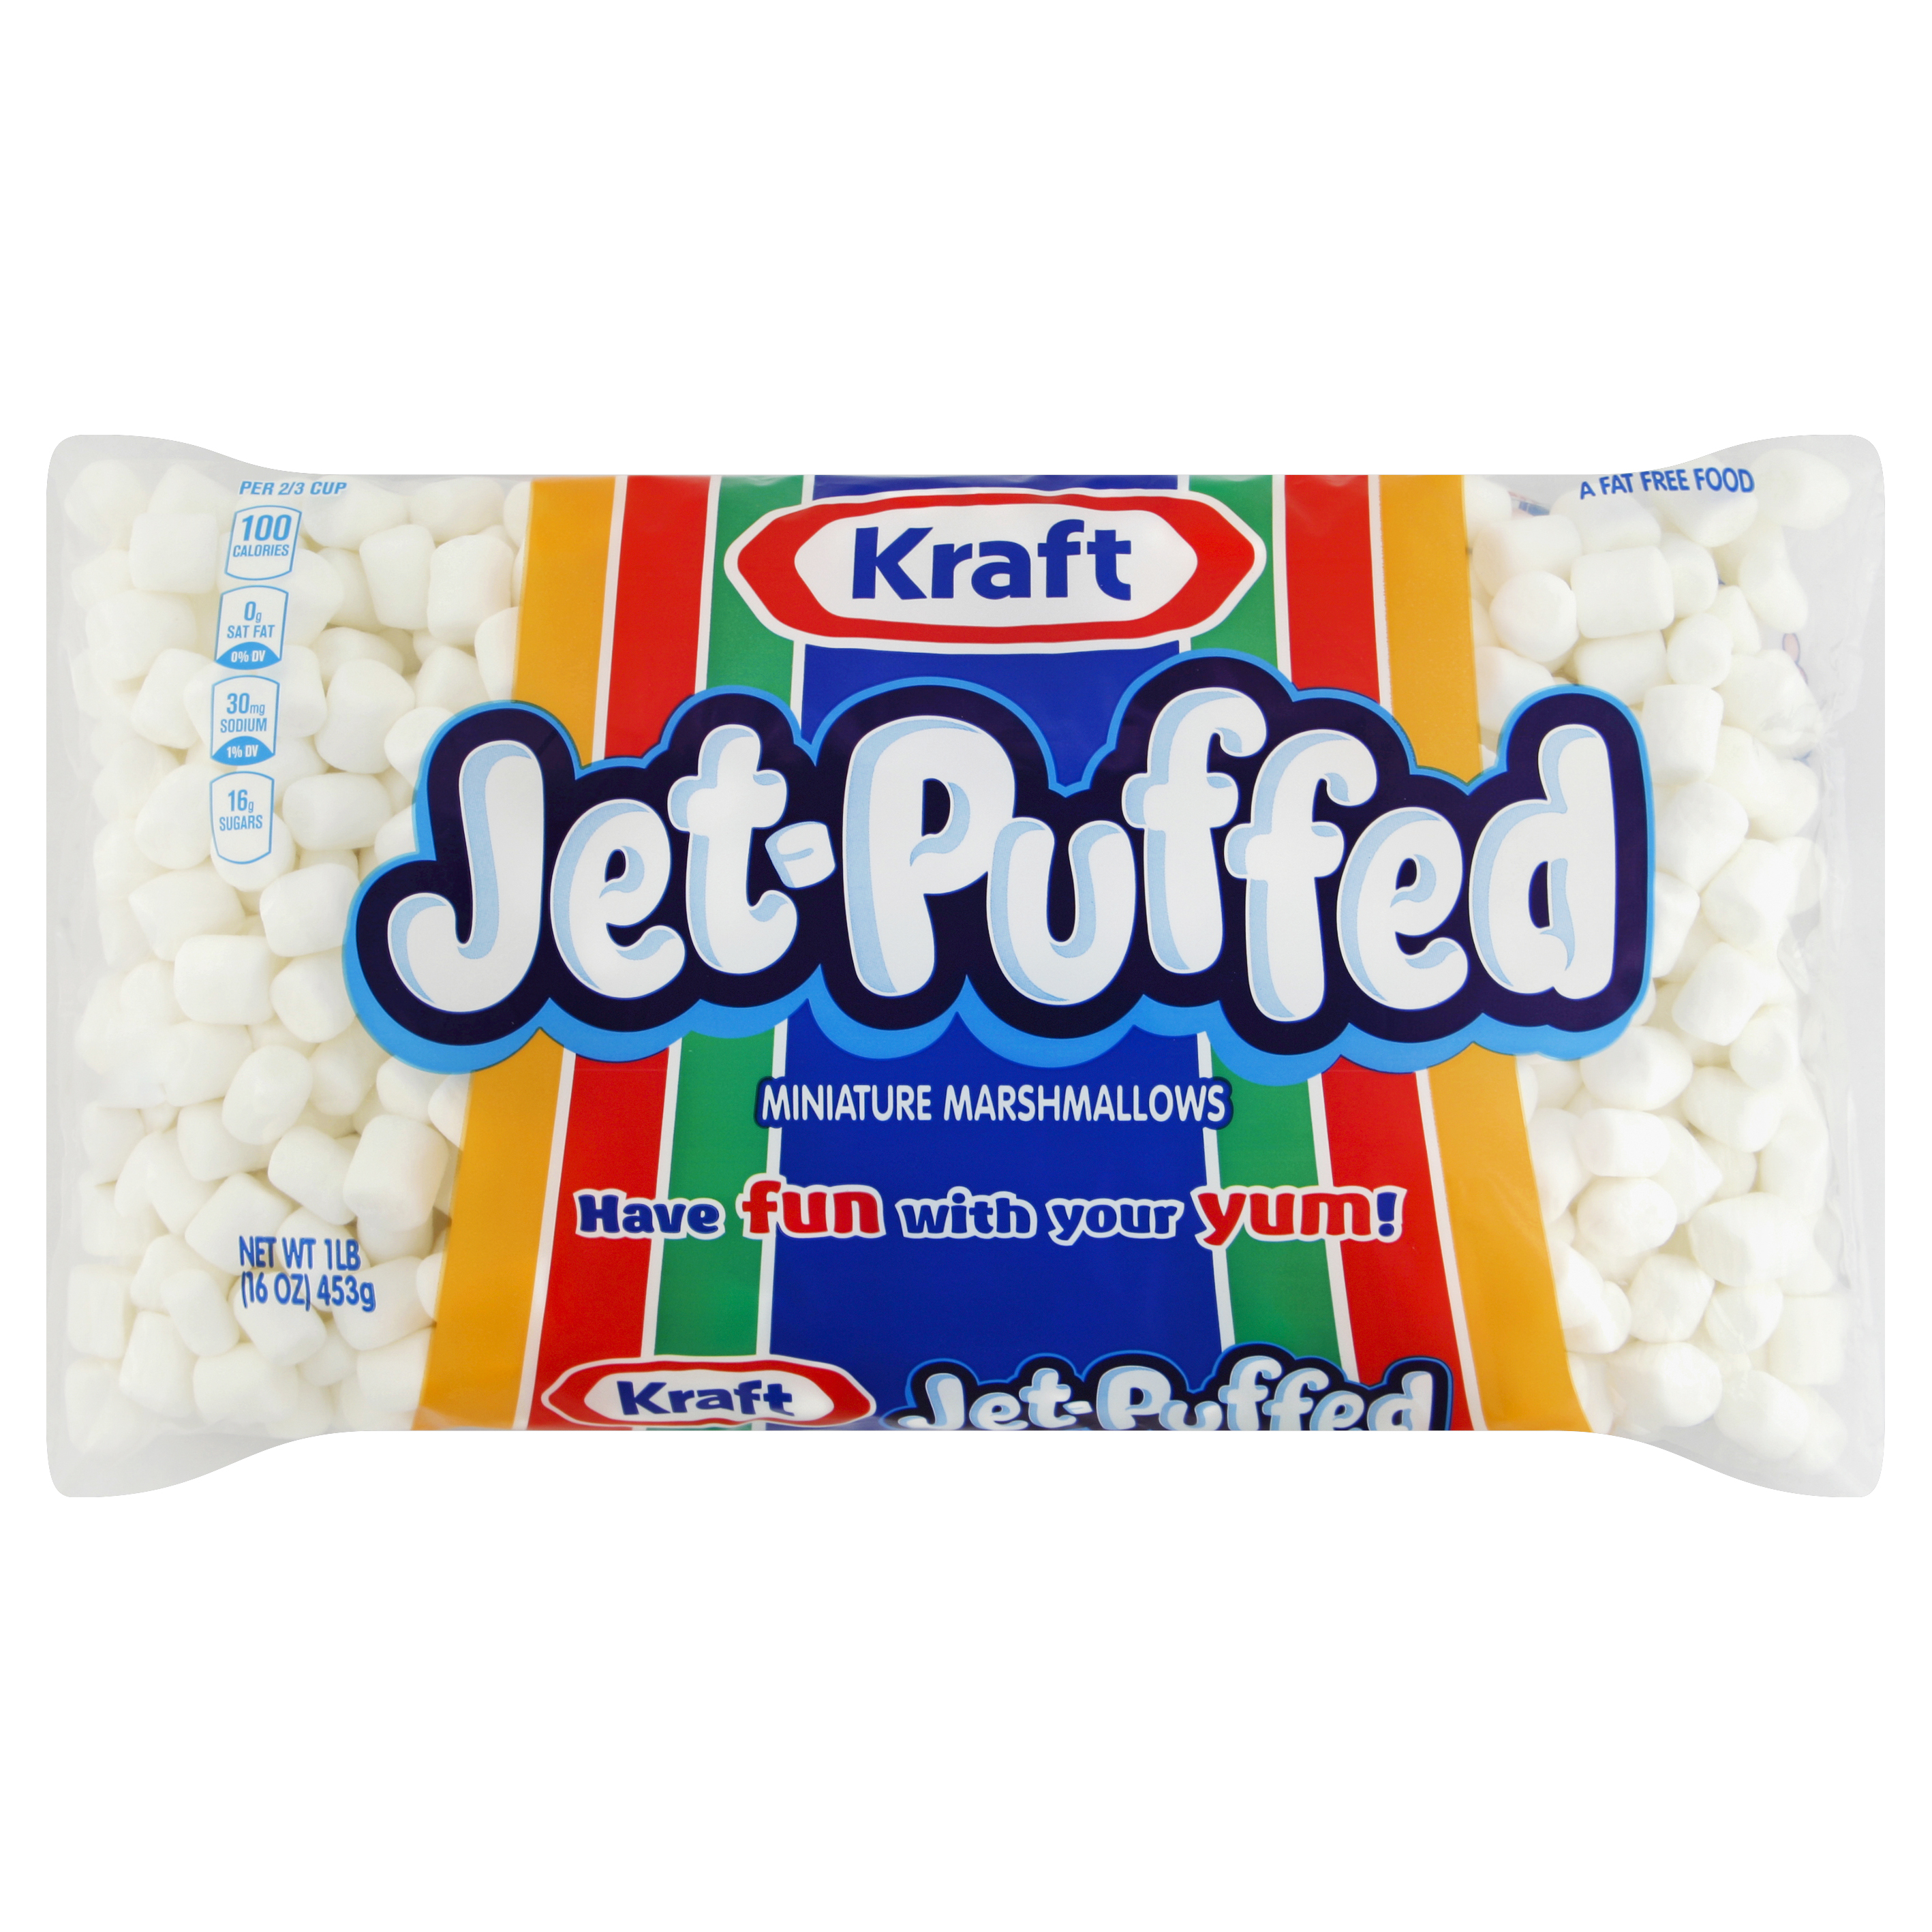 Jet-Puffed Miniature Marshmallows 16 oz Bag image